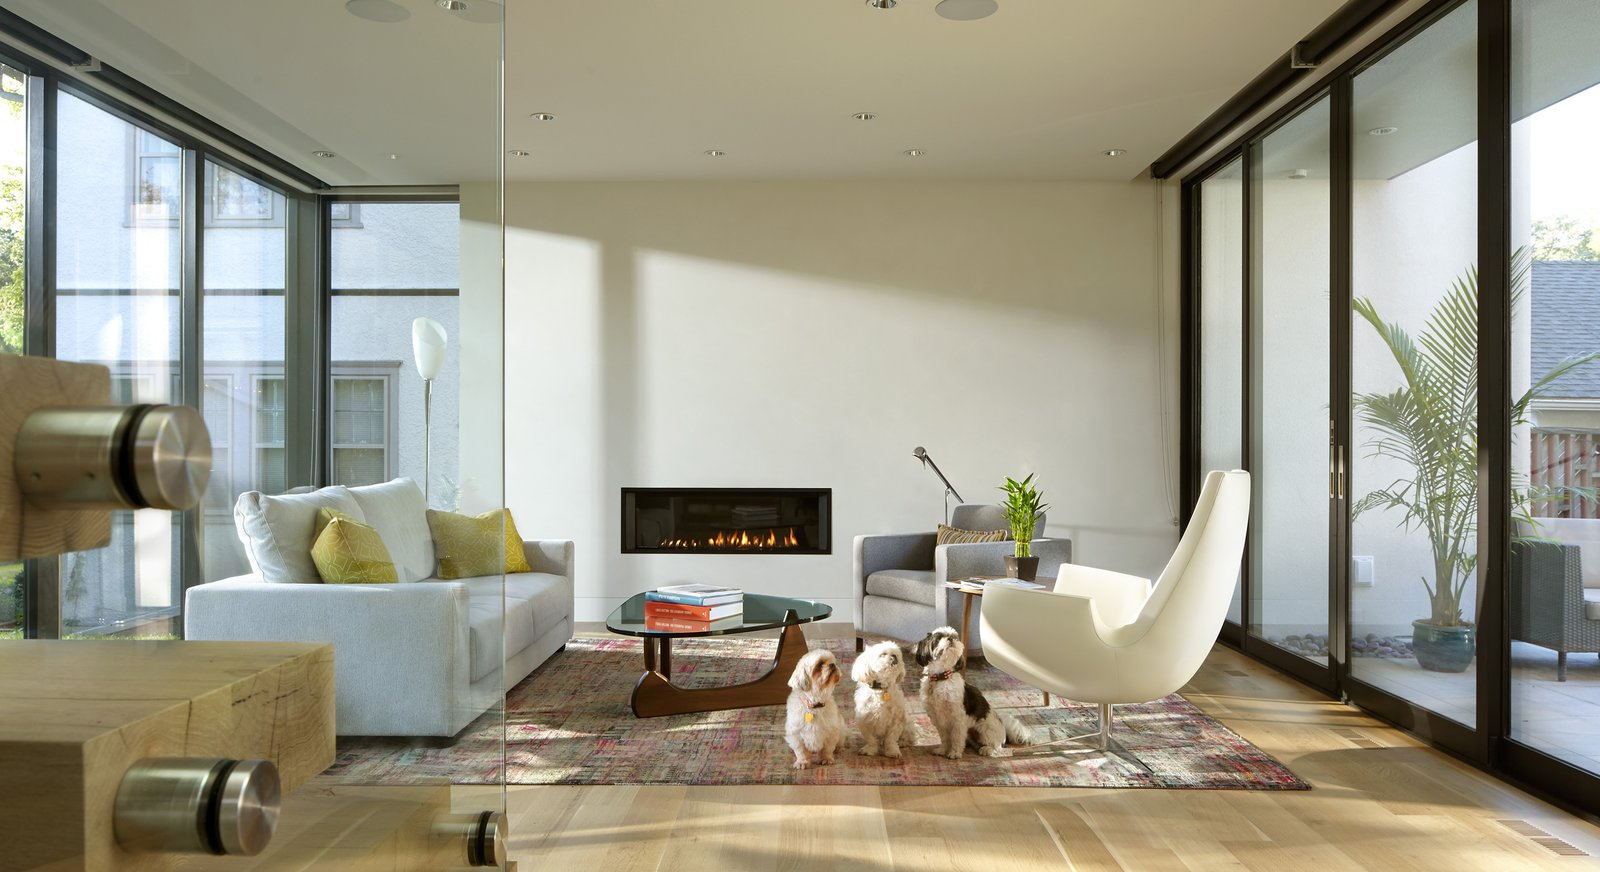 Gas Burning Fireplace, Ceiling Lighting, Chair, Light Hardwood Floor, Staircase, Wood Tread, and Glass Railing  Sheridan Residence by Peterssen/Keller Architecture